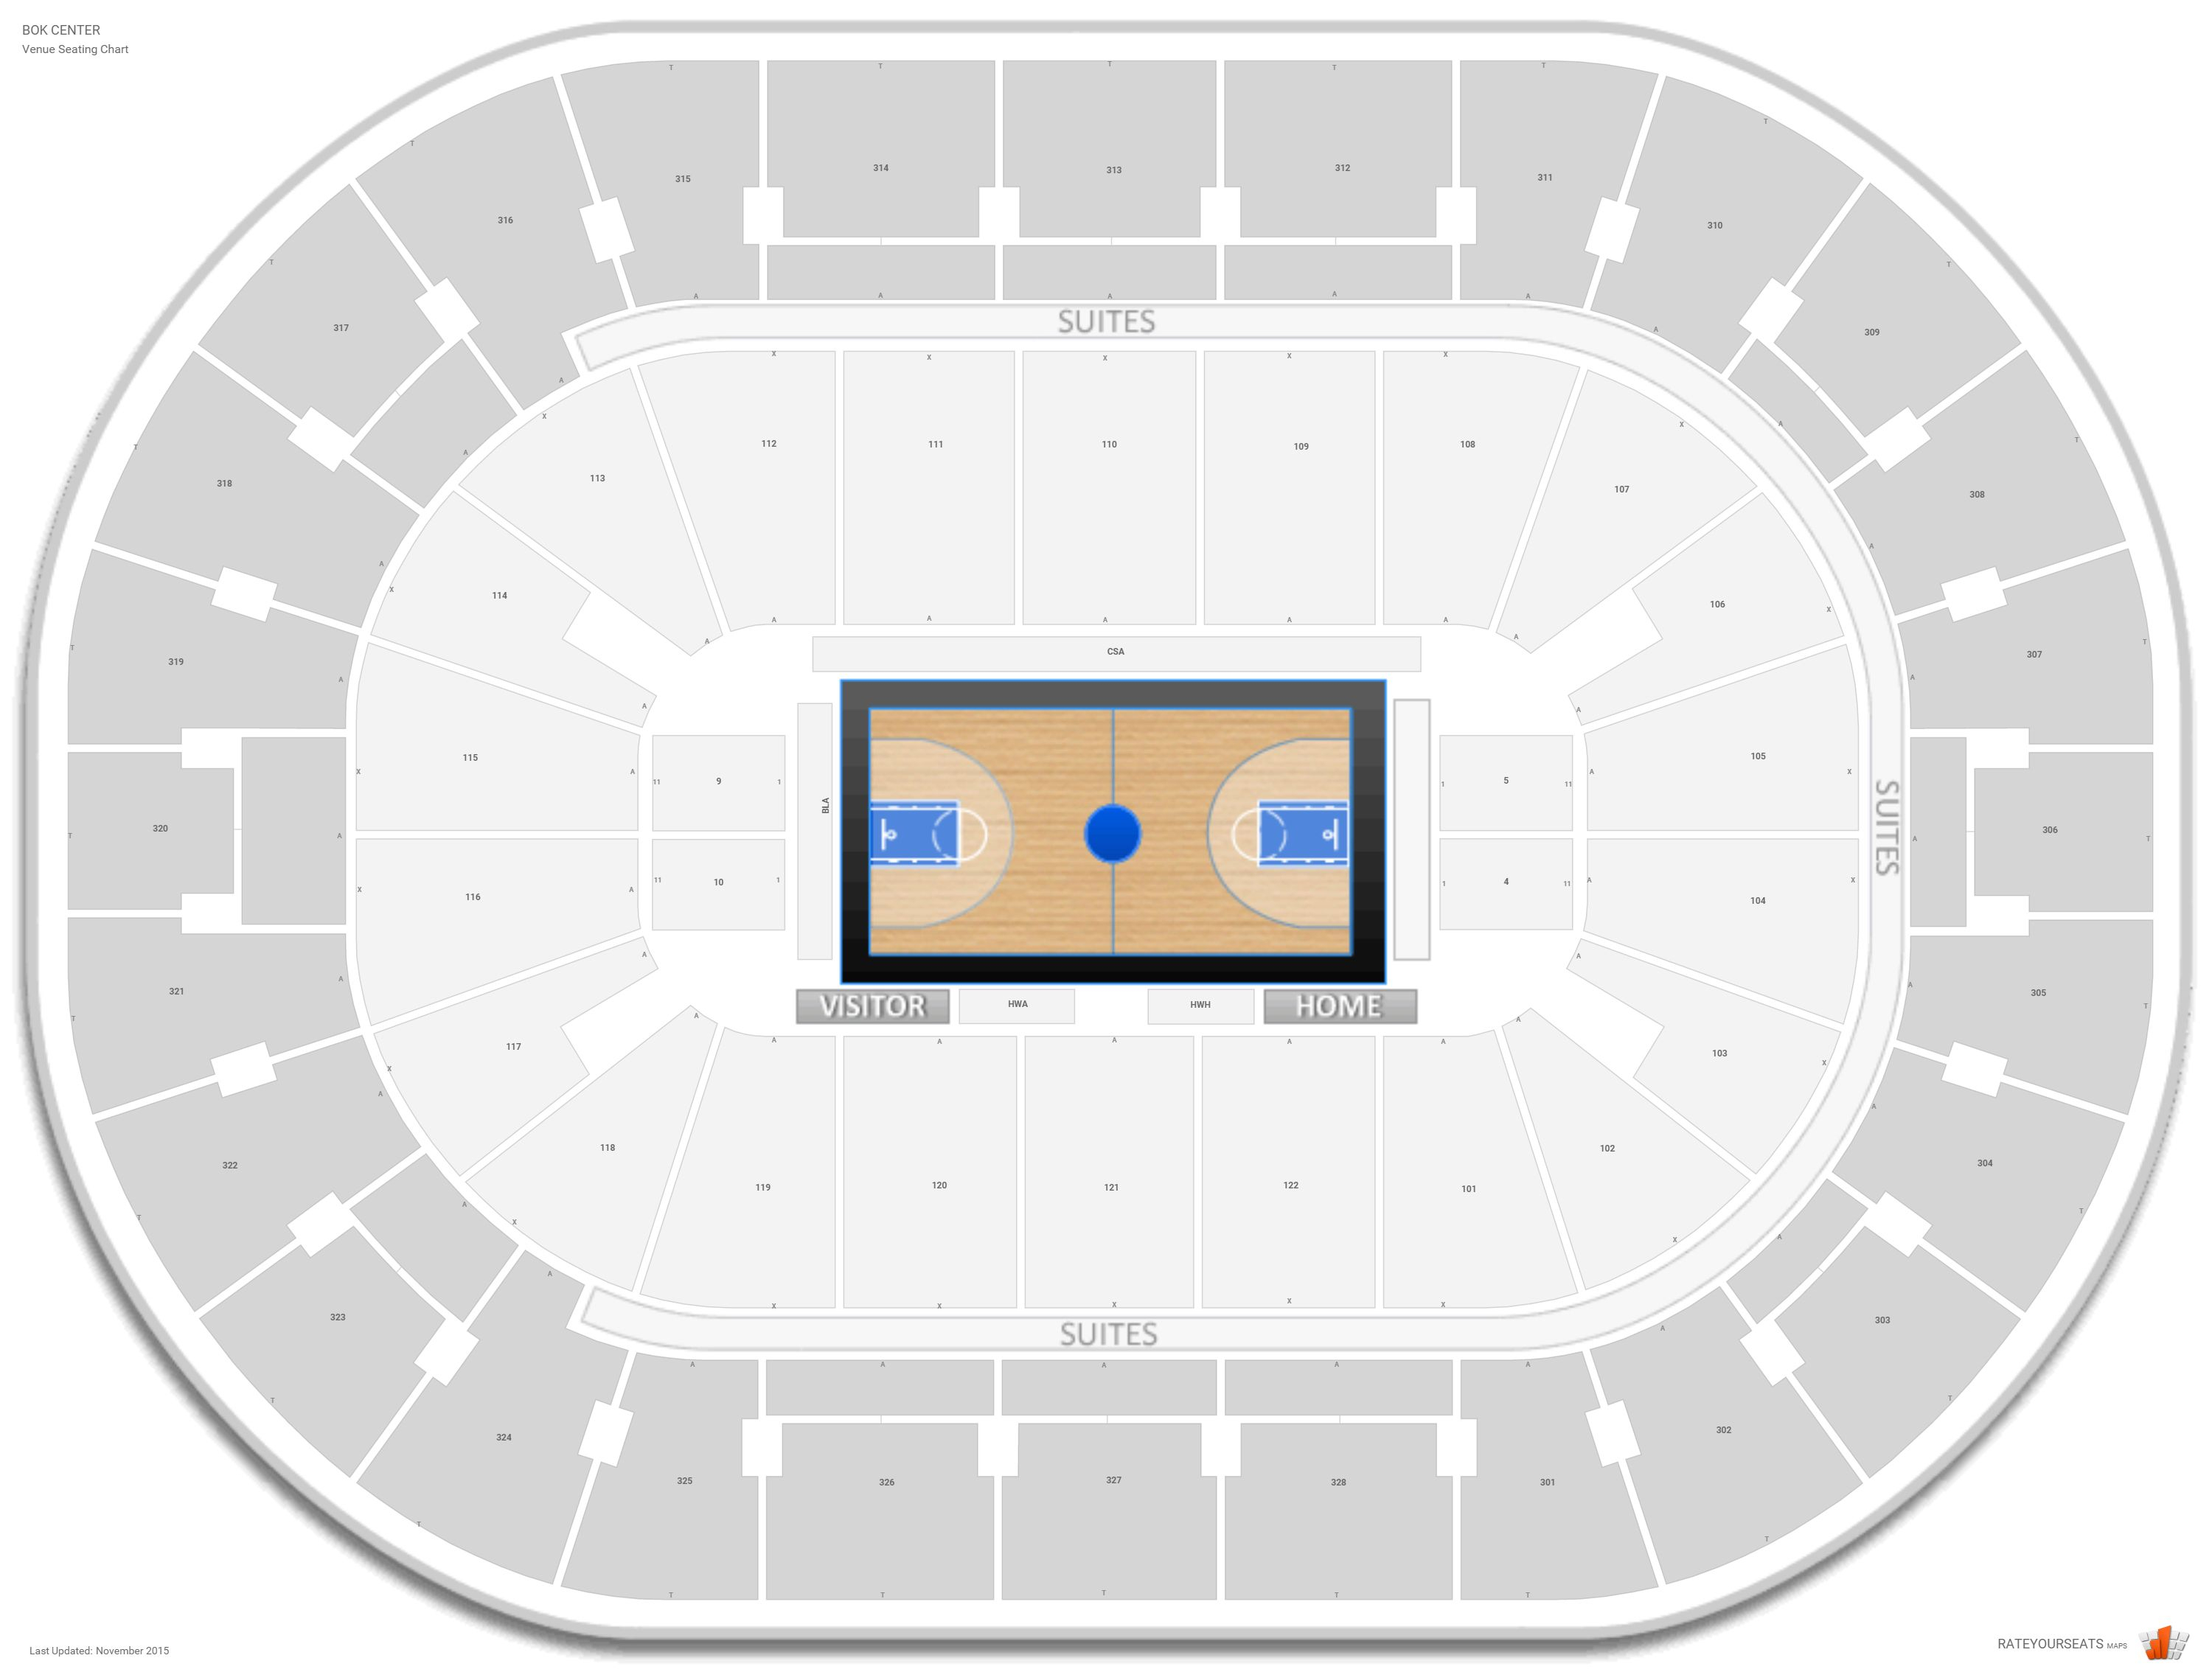 Bok Center Basketball Seating  Rateyourseats pertaining to Bok Center Seating Chart